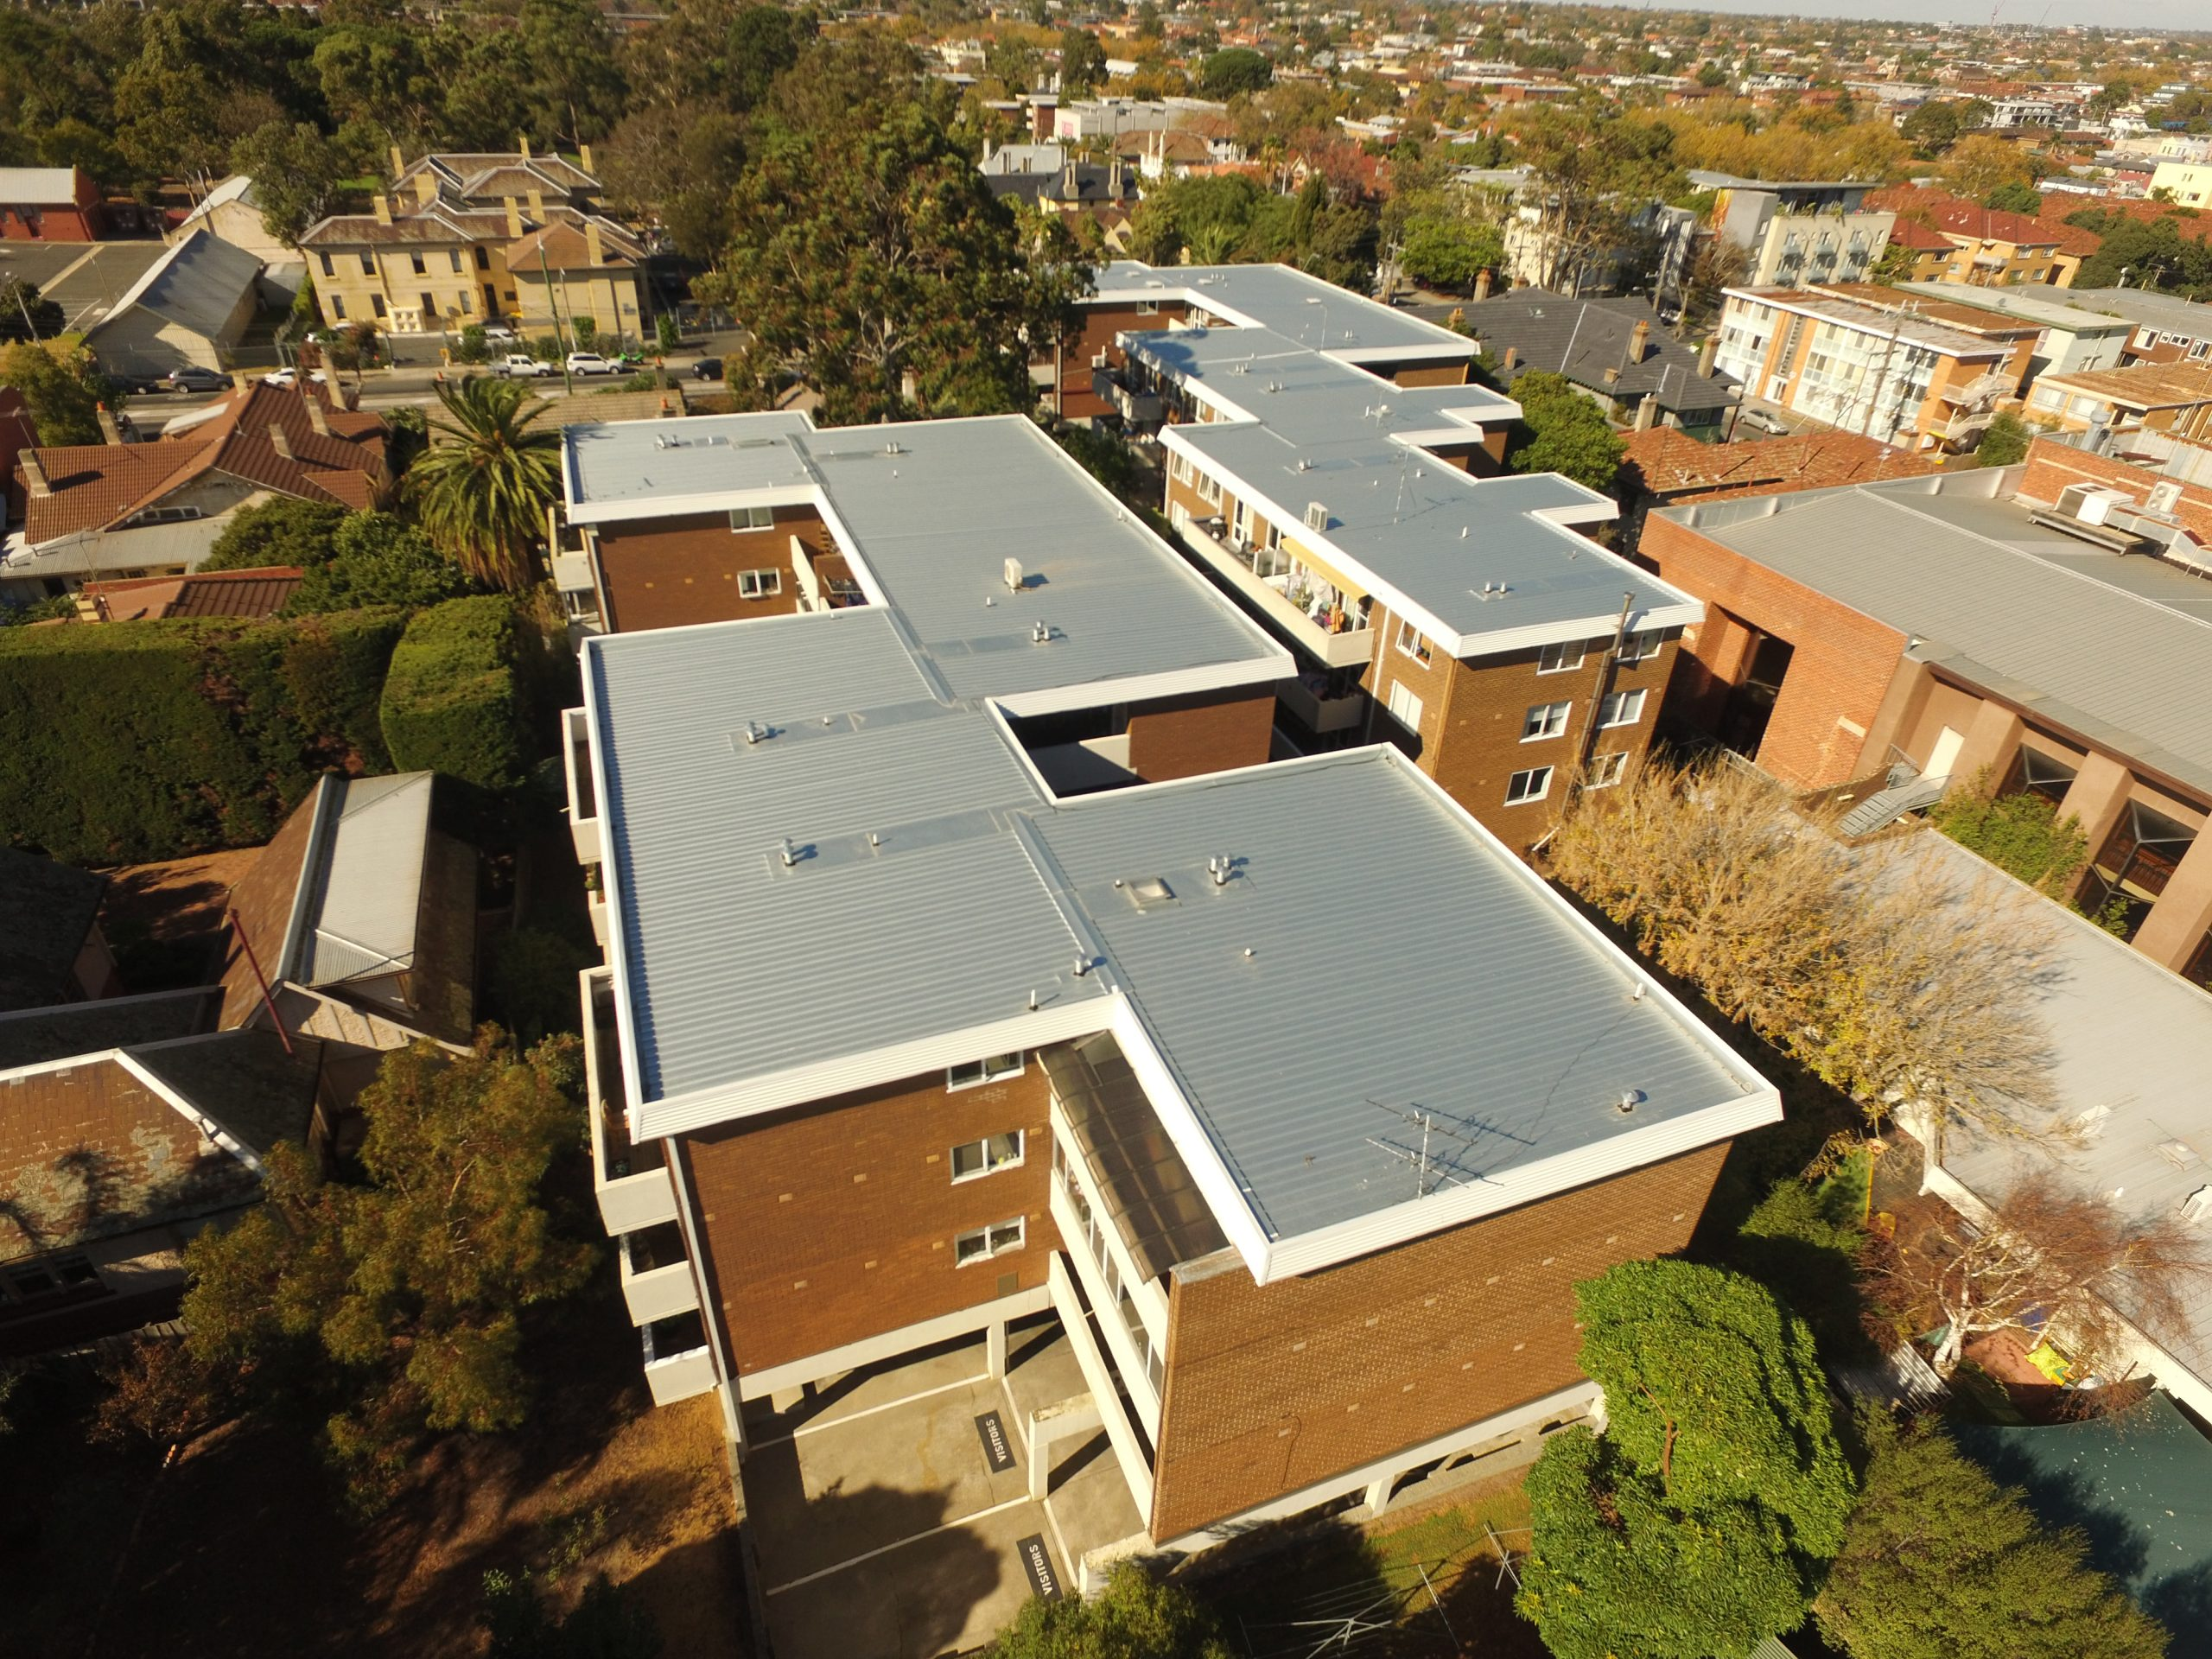 Colorbond Roofing Replacement Melbourne - ACR Roofing